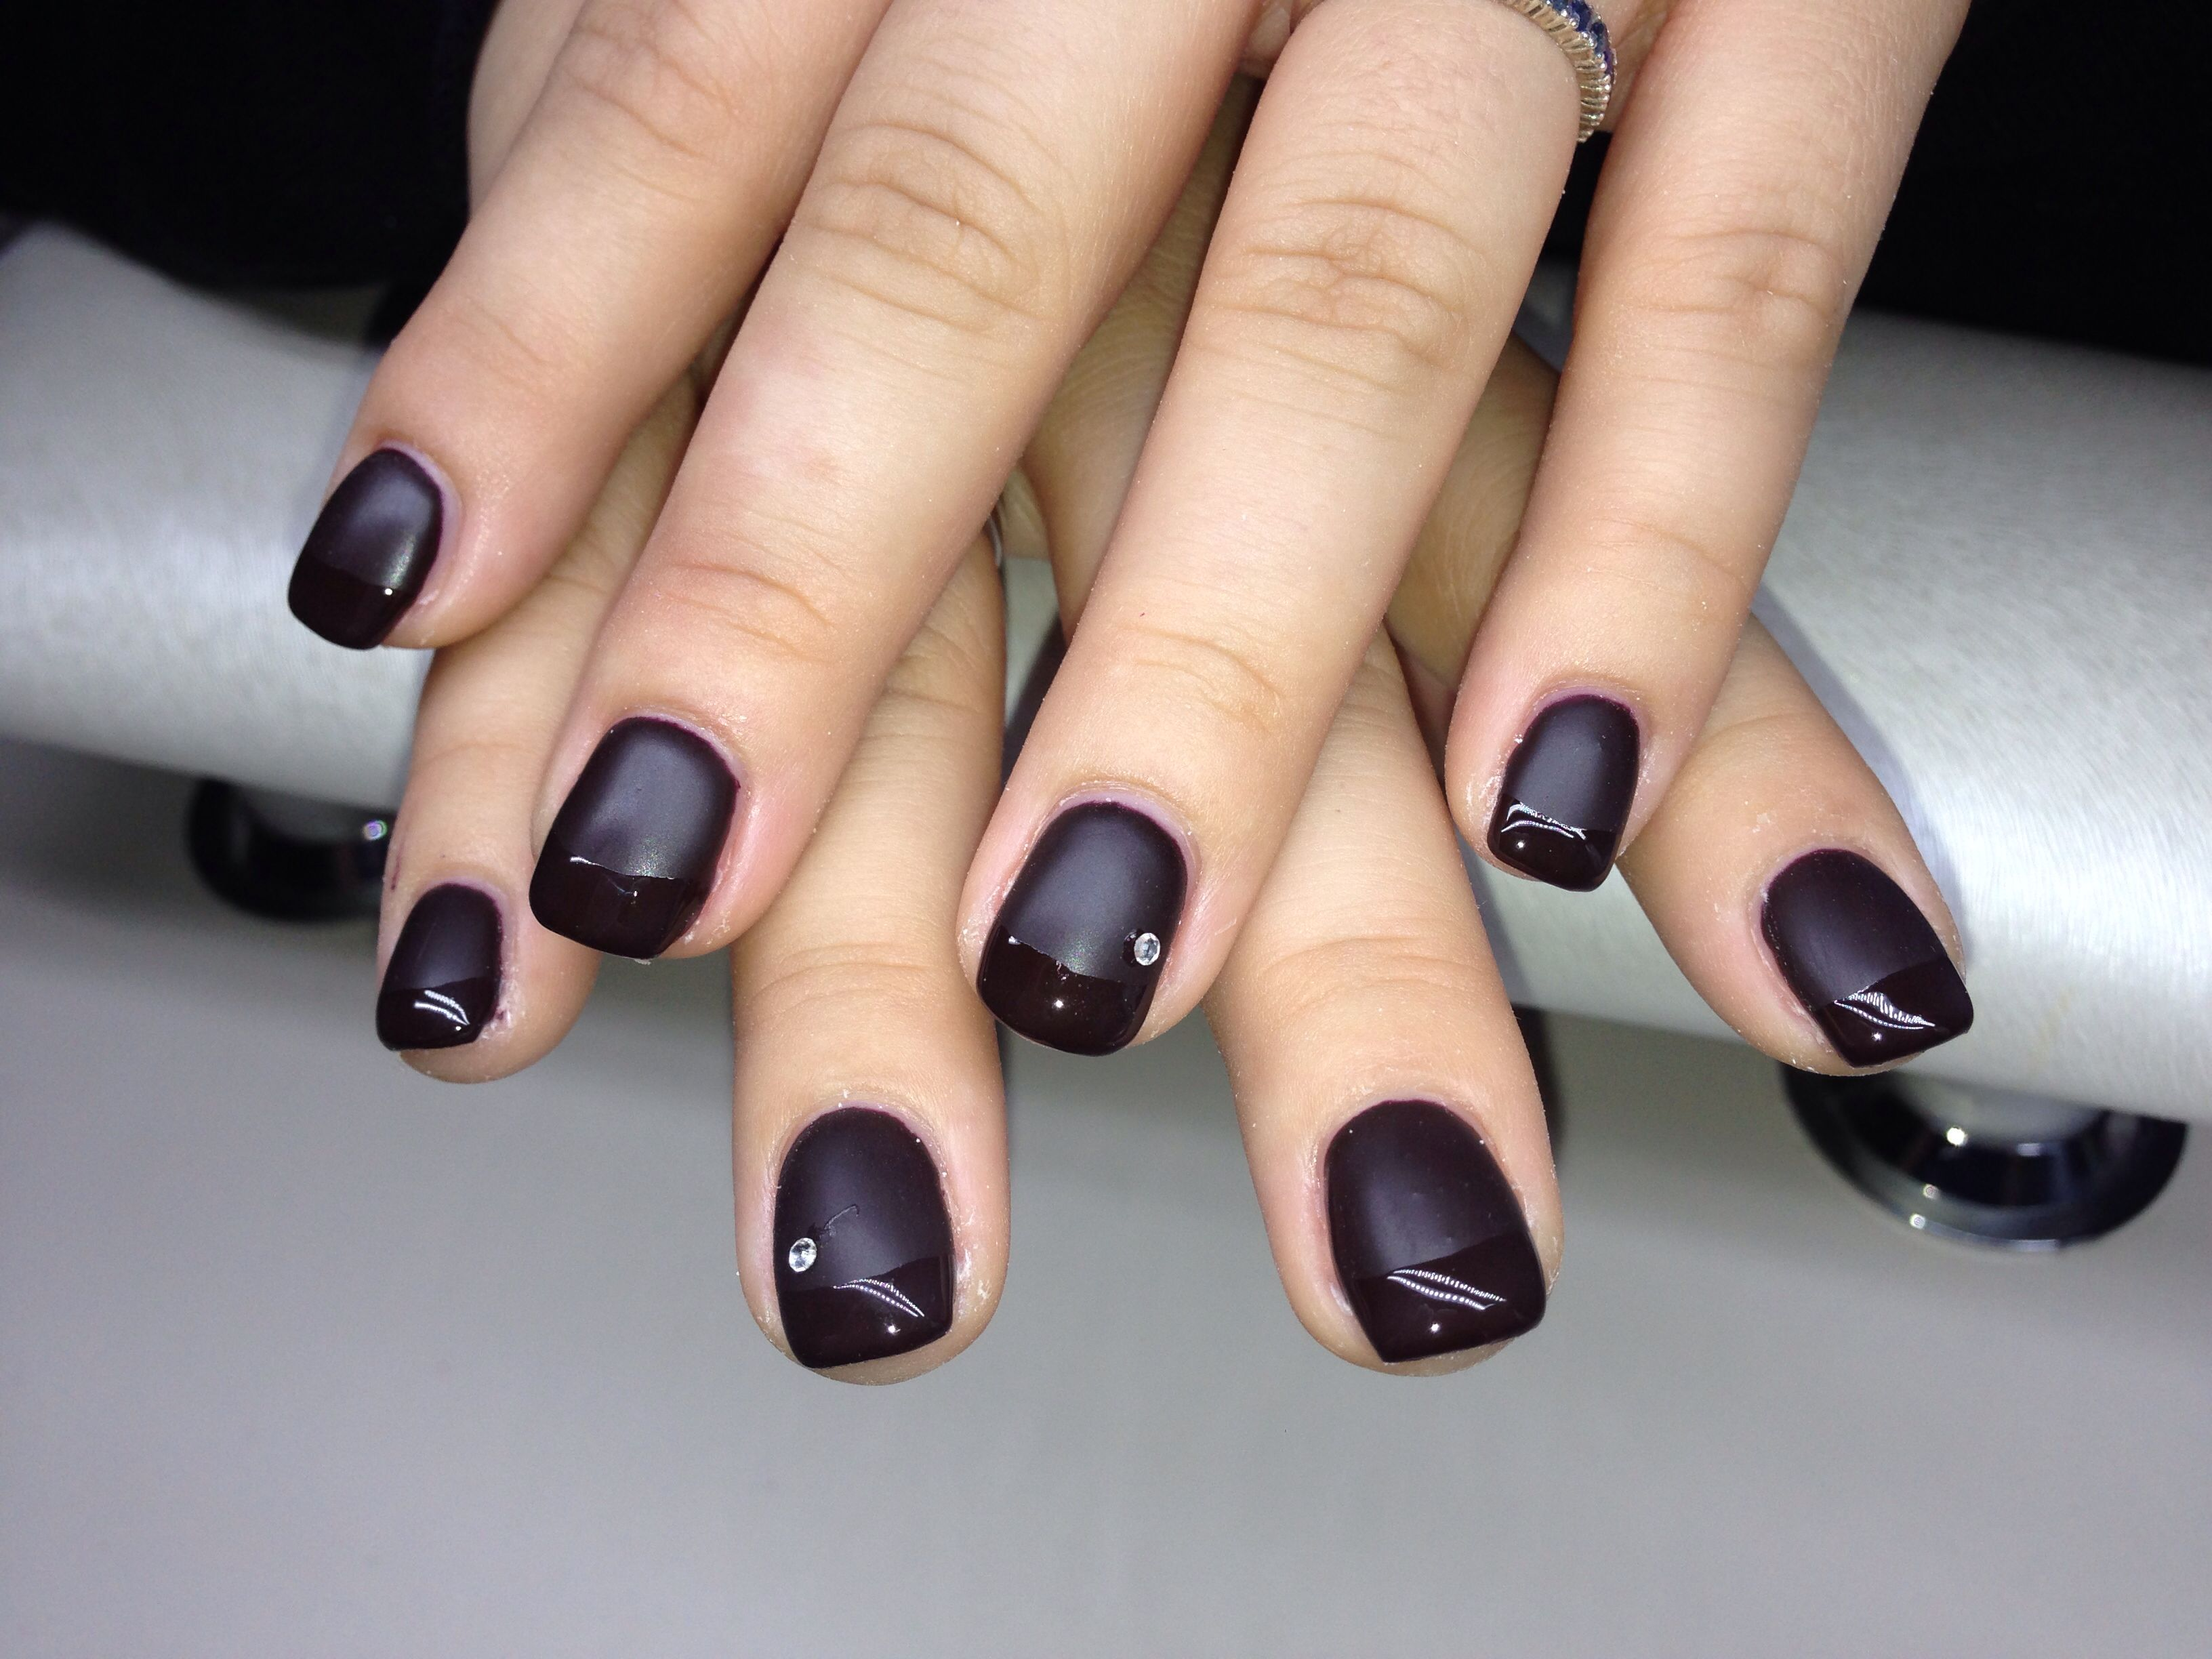 Dark Red NAILS matt and Glanz | Nails | Pinterest | Dark red nails ...